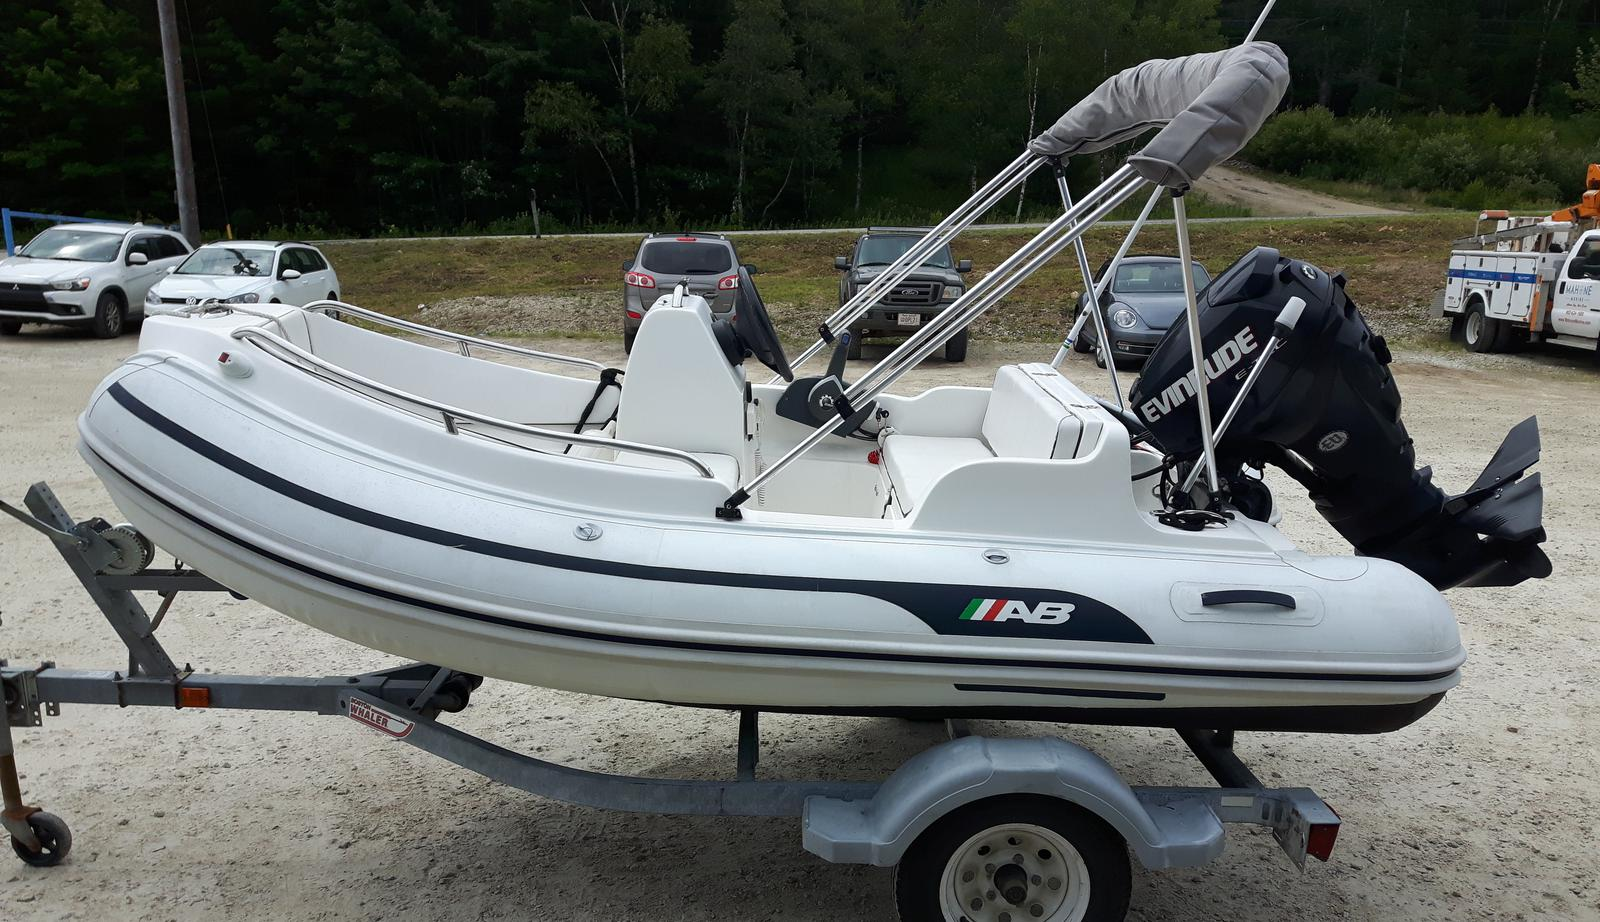 2007 AB Inflatables Nautilus 11 DLX for sale in Mahone Bay